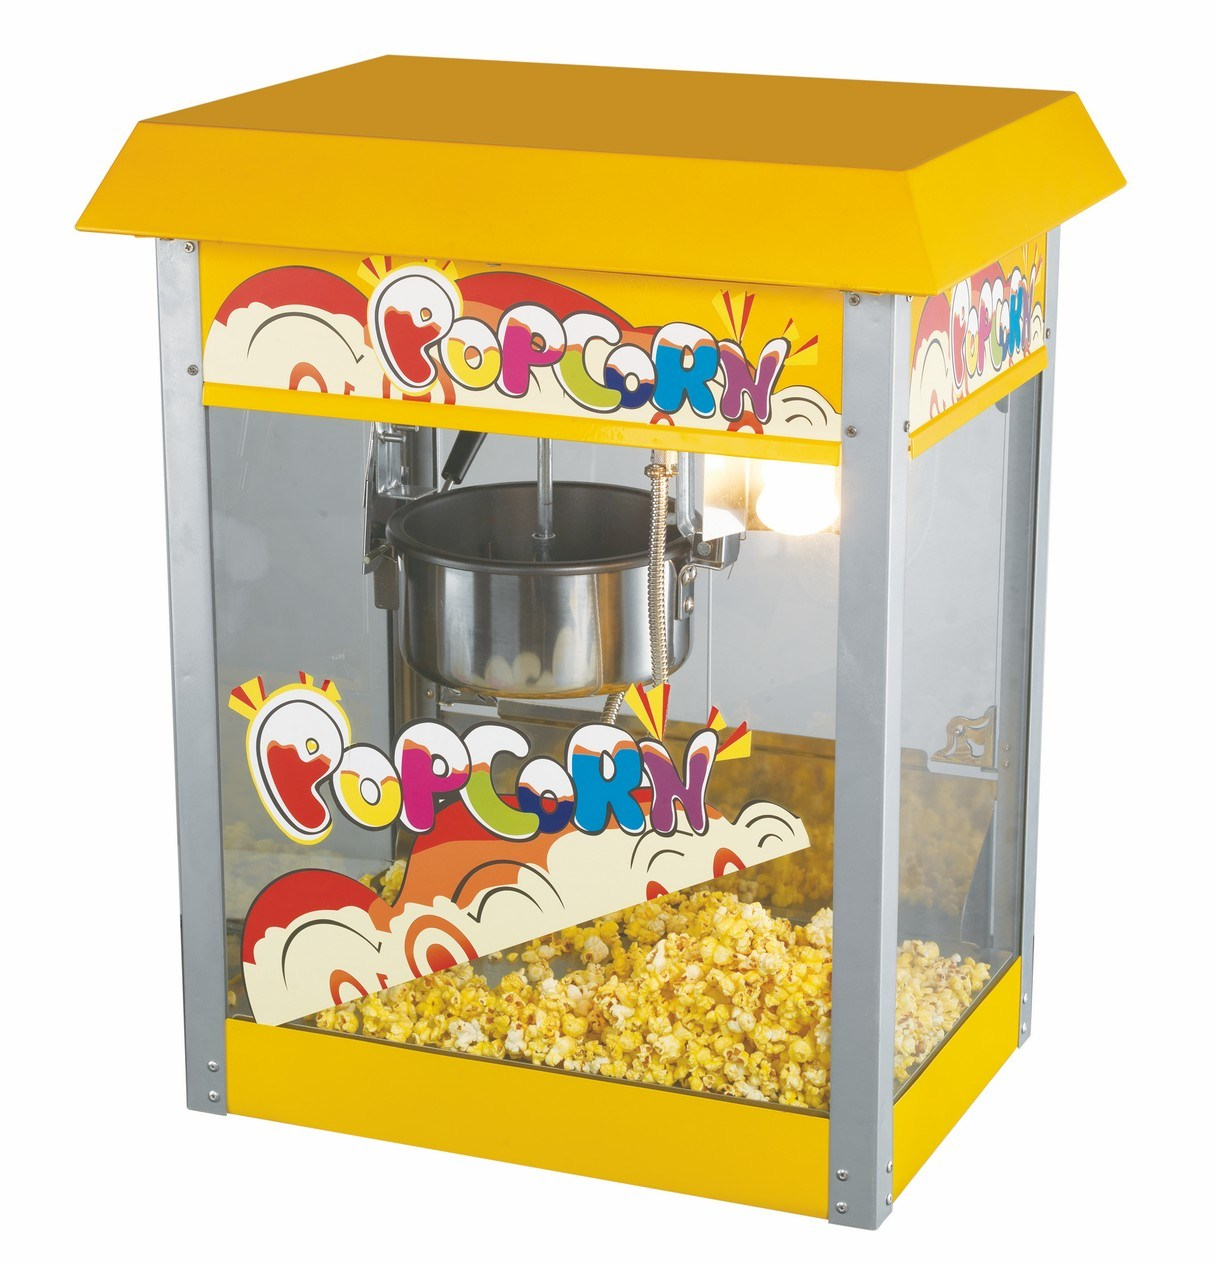 24 Oz Floor Stand Popcorn Machine with Wheel